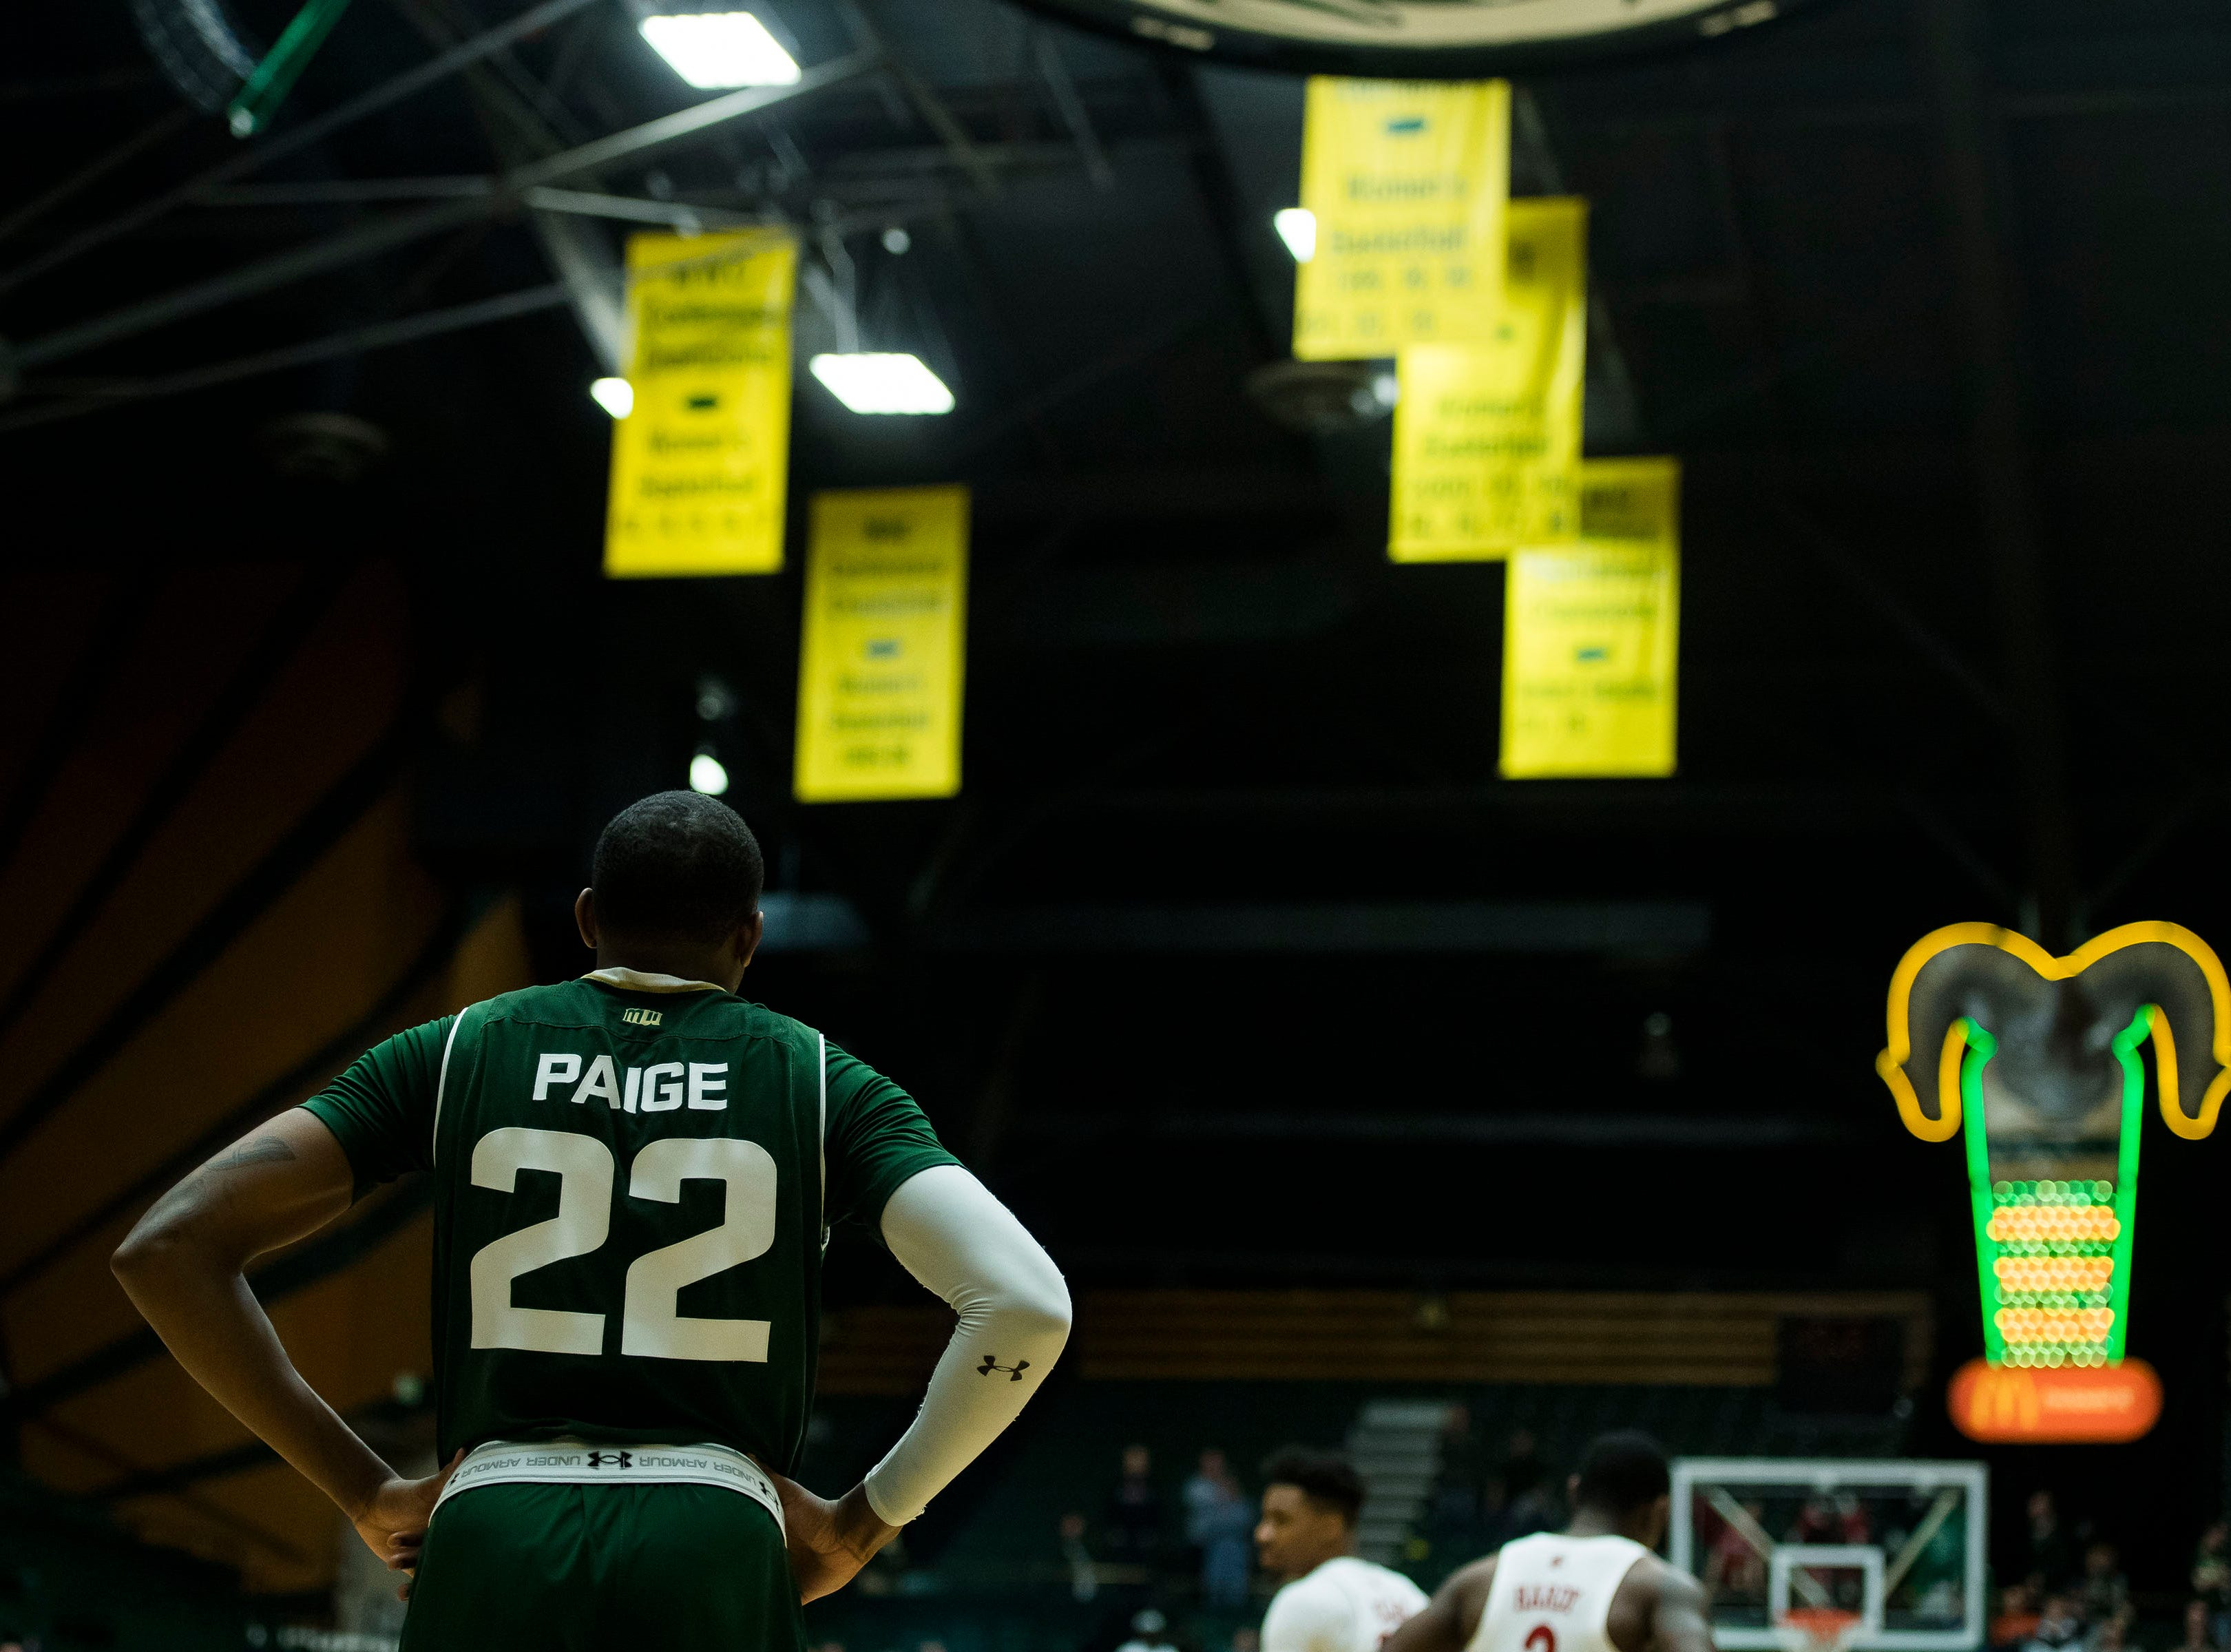 Colorado State University senior guar J.D. Paige (22) looks on late in the 4th period of his final home game against University of Nevada Las Vegas on Saturday, March 9, 2019, at Moby Arena in Fort Collins, Colo.